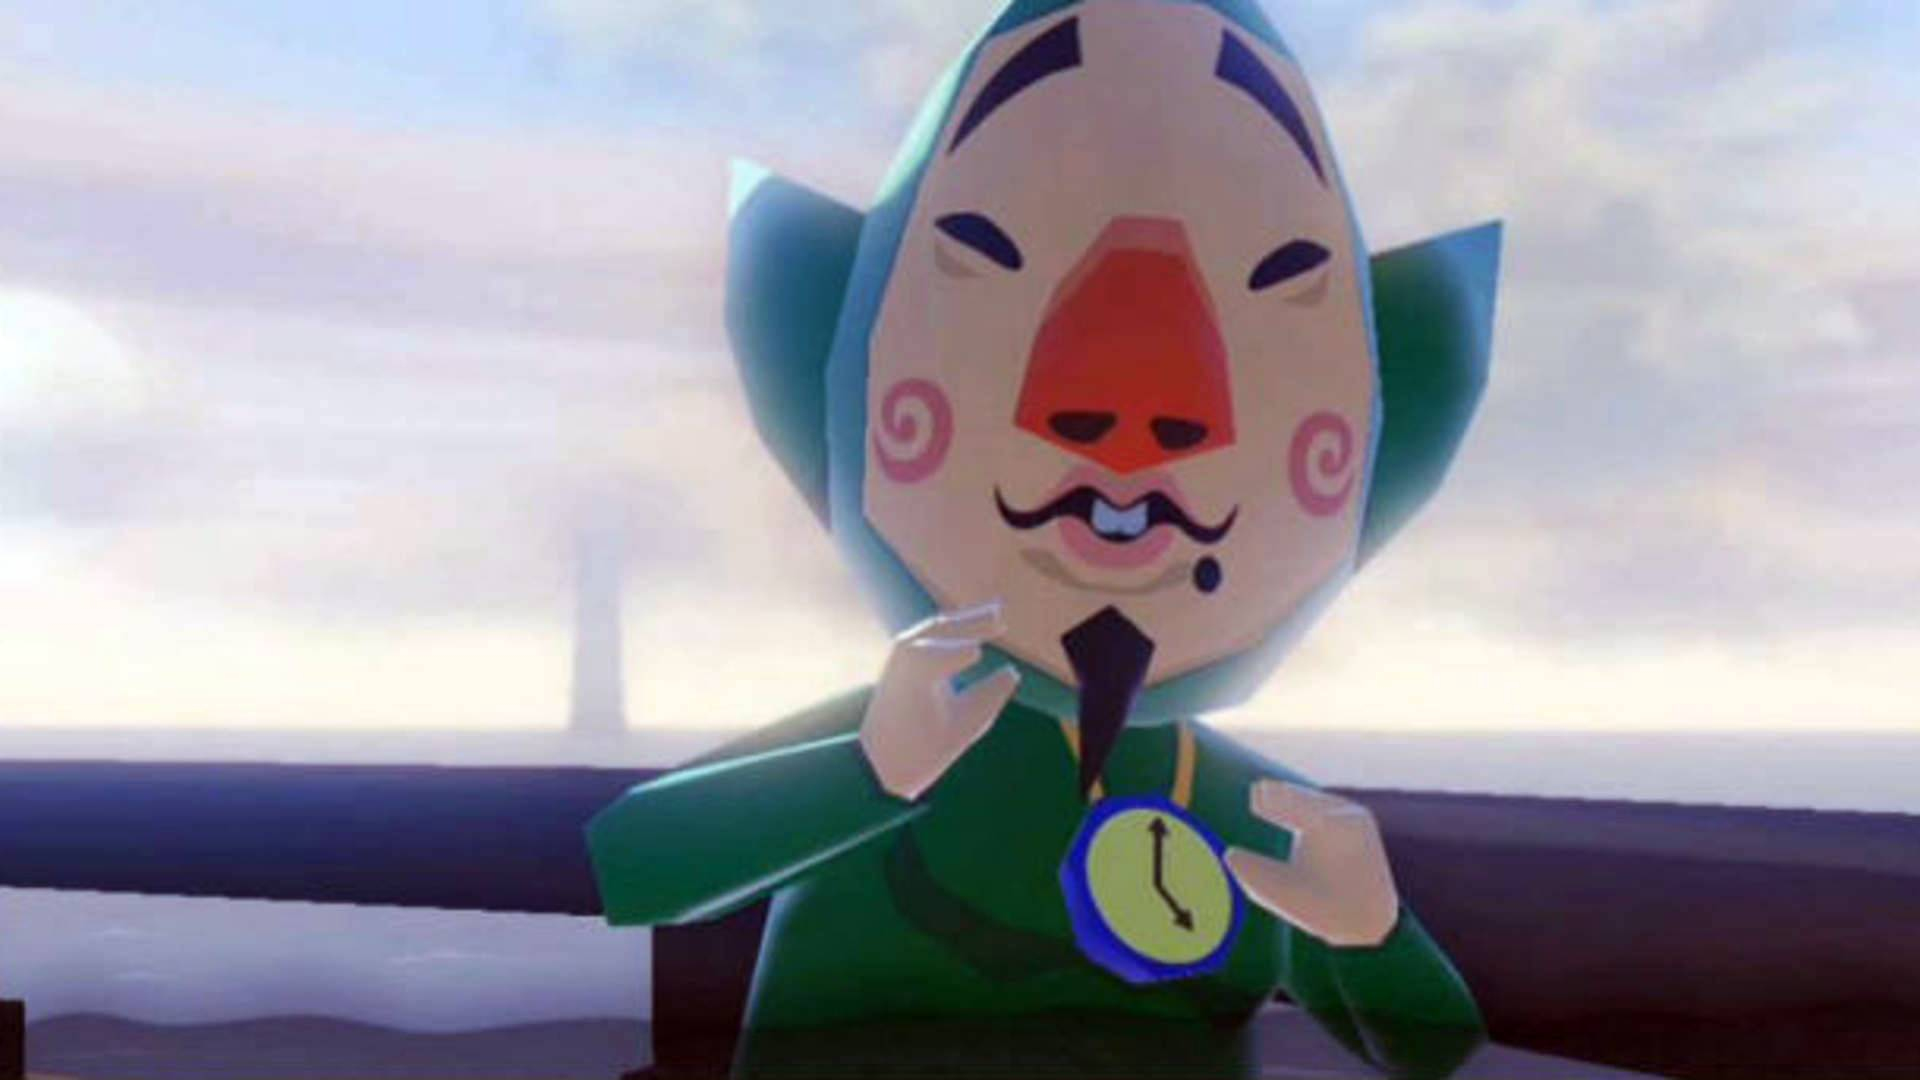 Tingle in The Legend of Zelda: The Wind Waker